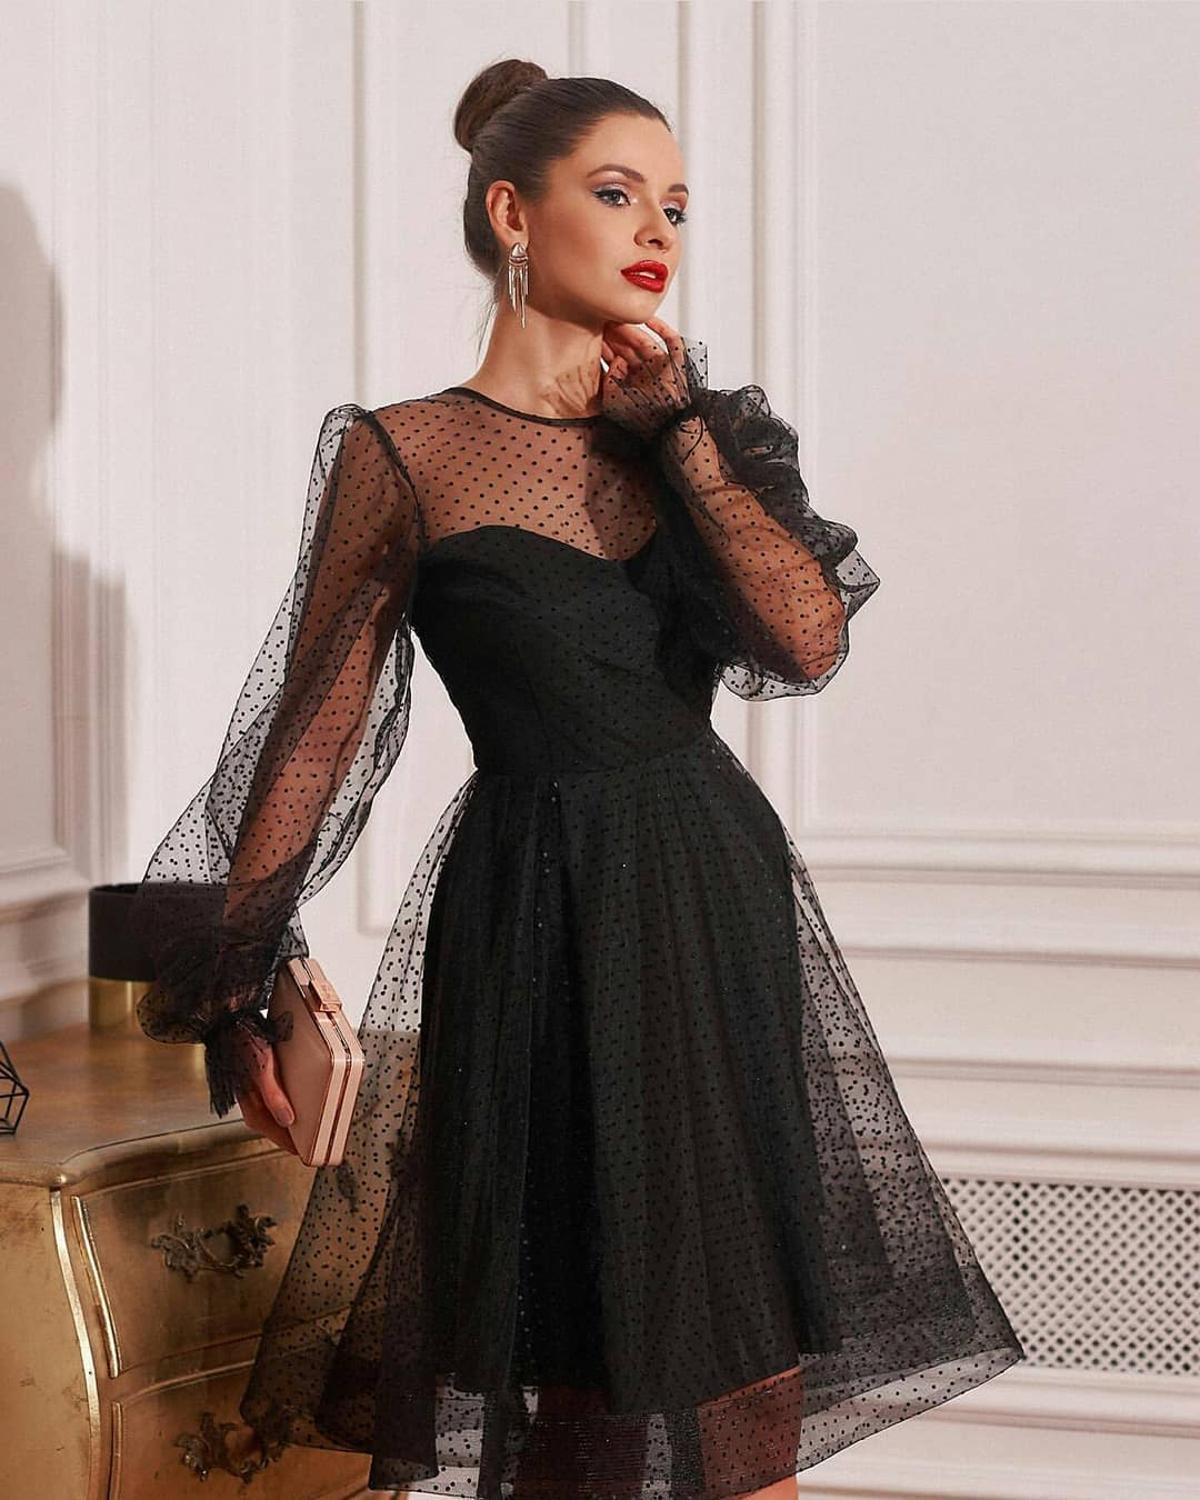 Black Long Sleeve Knee Length Cocktail Dress Short Plus Size Elegant Prom Dresses Custom Cheap Simple Party Gowns